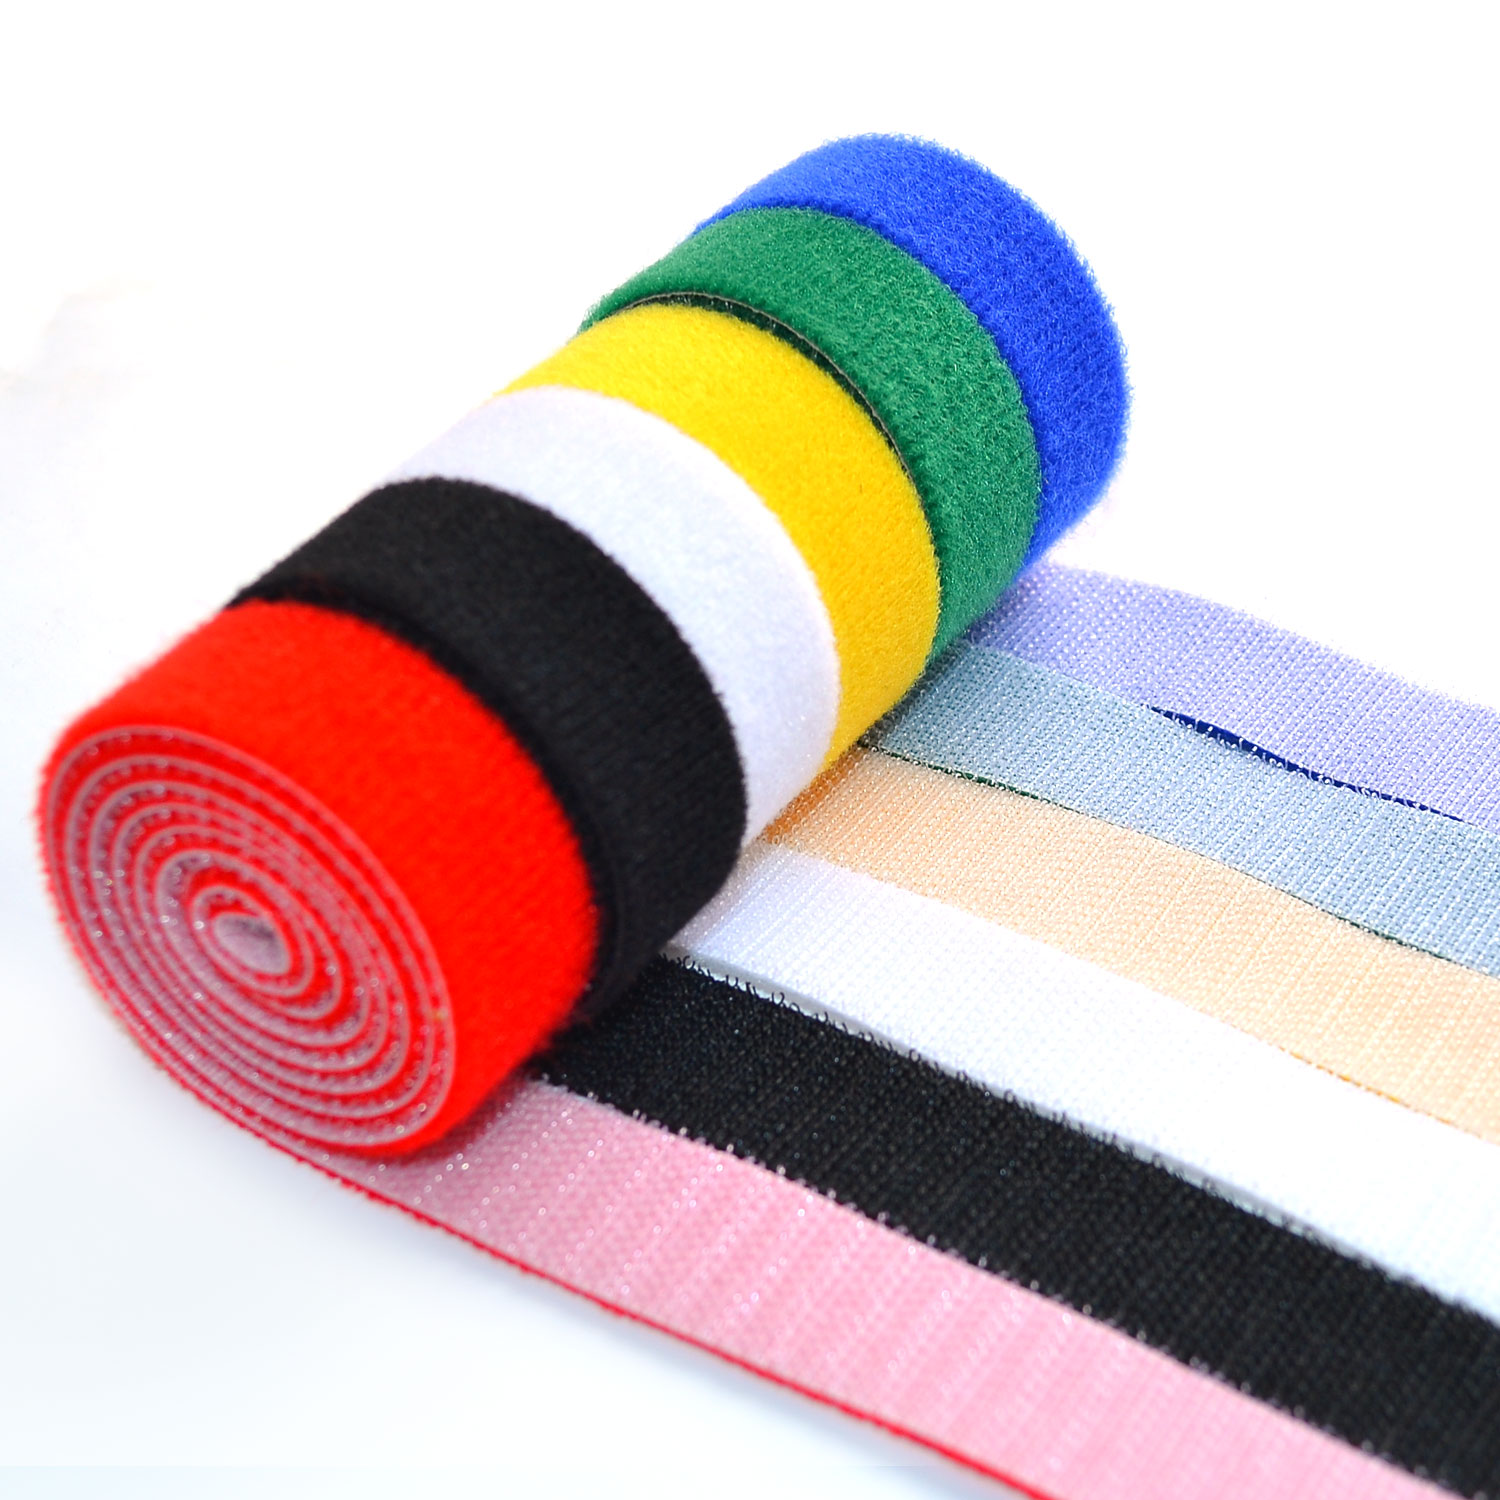 71bf81c72df8 6 PCS of Cable-Tidy Velcro Fastening Tape Blue Red Black Green Yellow White